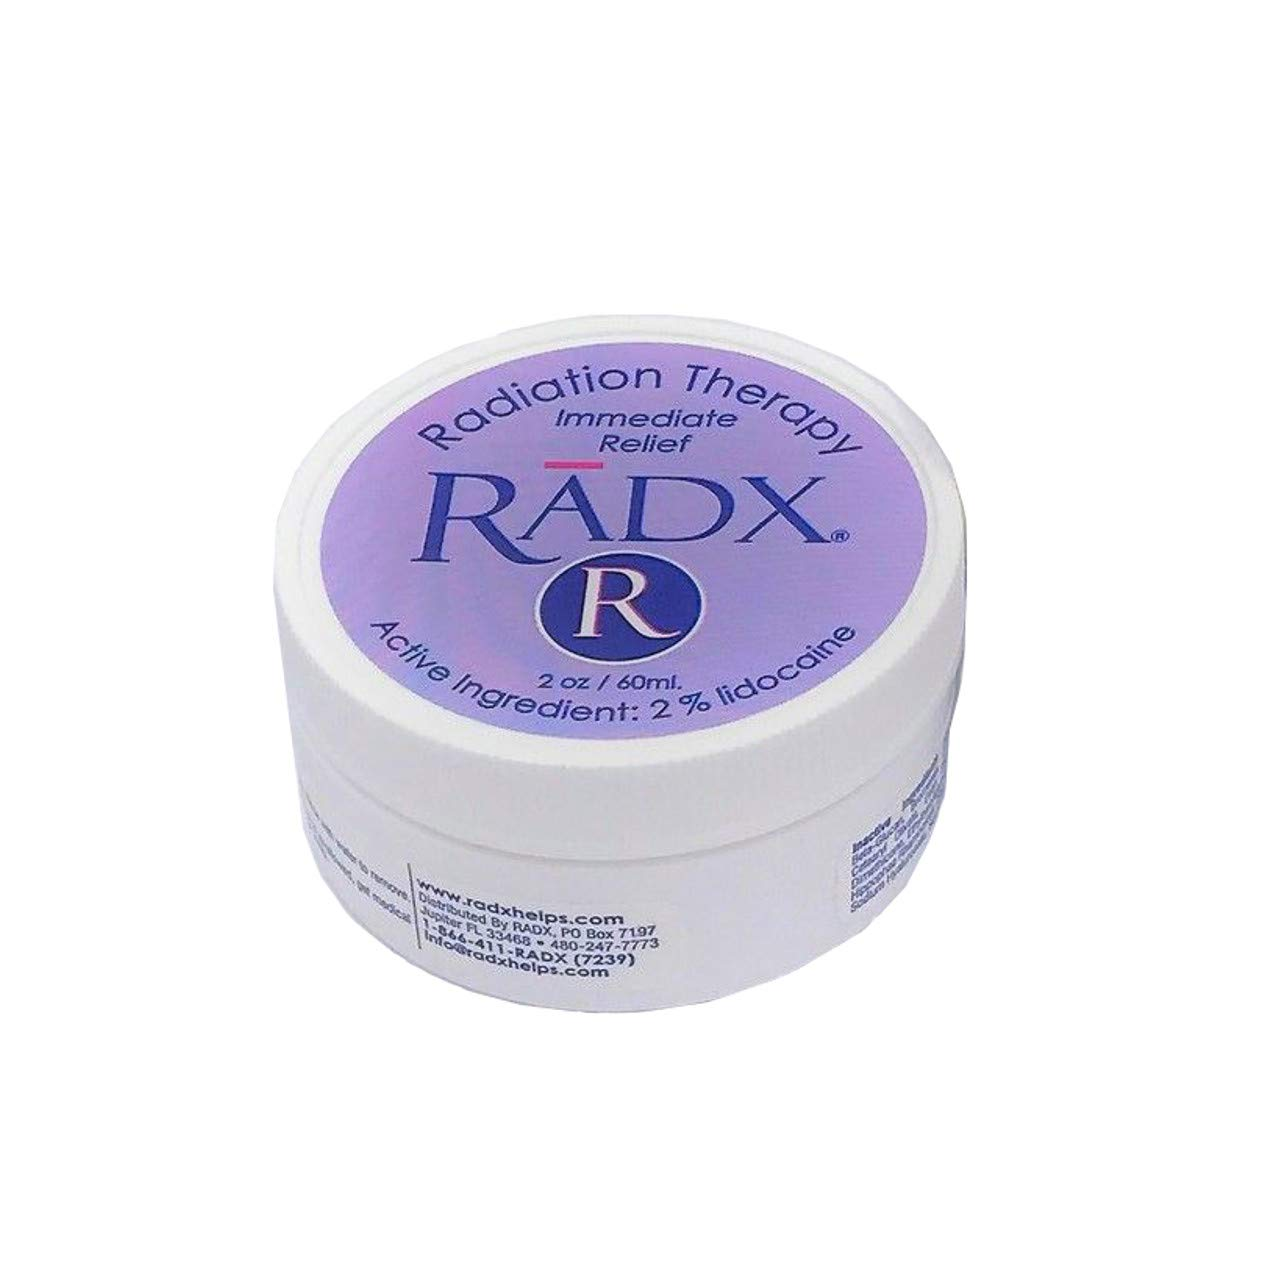 Radx - Oncology Therapy Cream with 2% Lidocaine, Burn Relief, Chemo and Radiation Skin Care - 2 Ounce jar by RADX